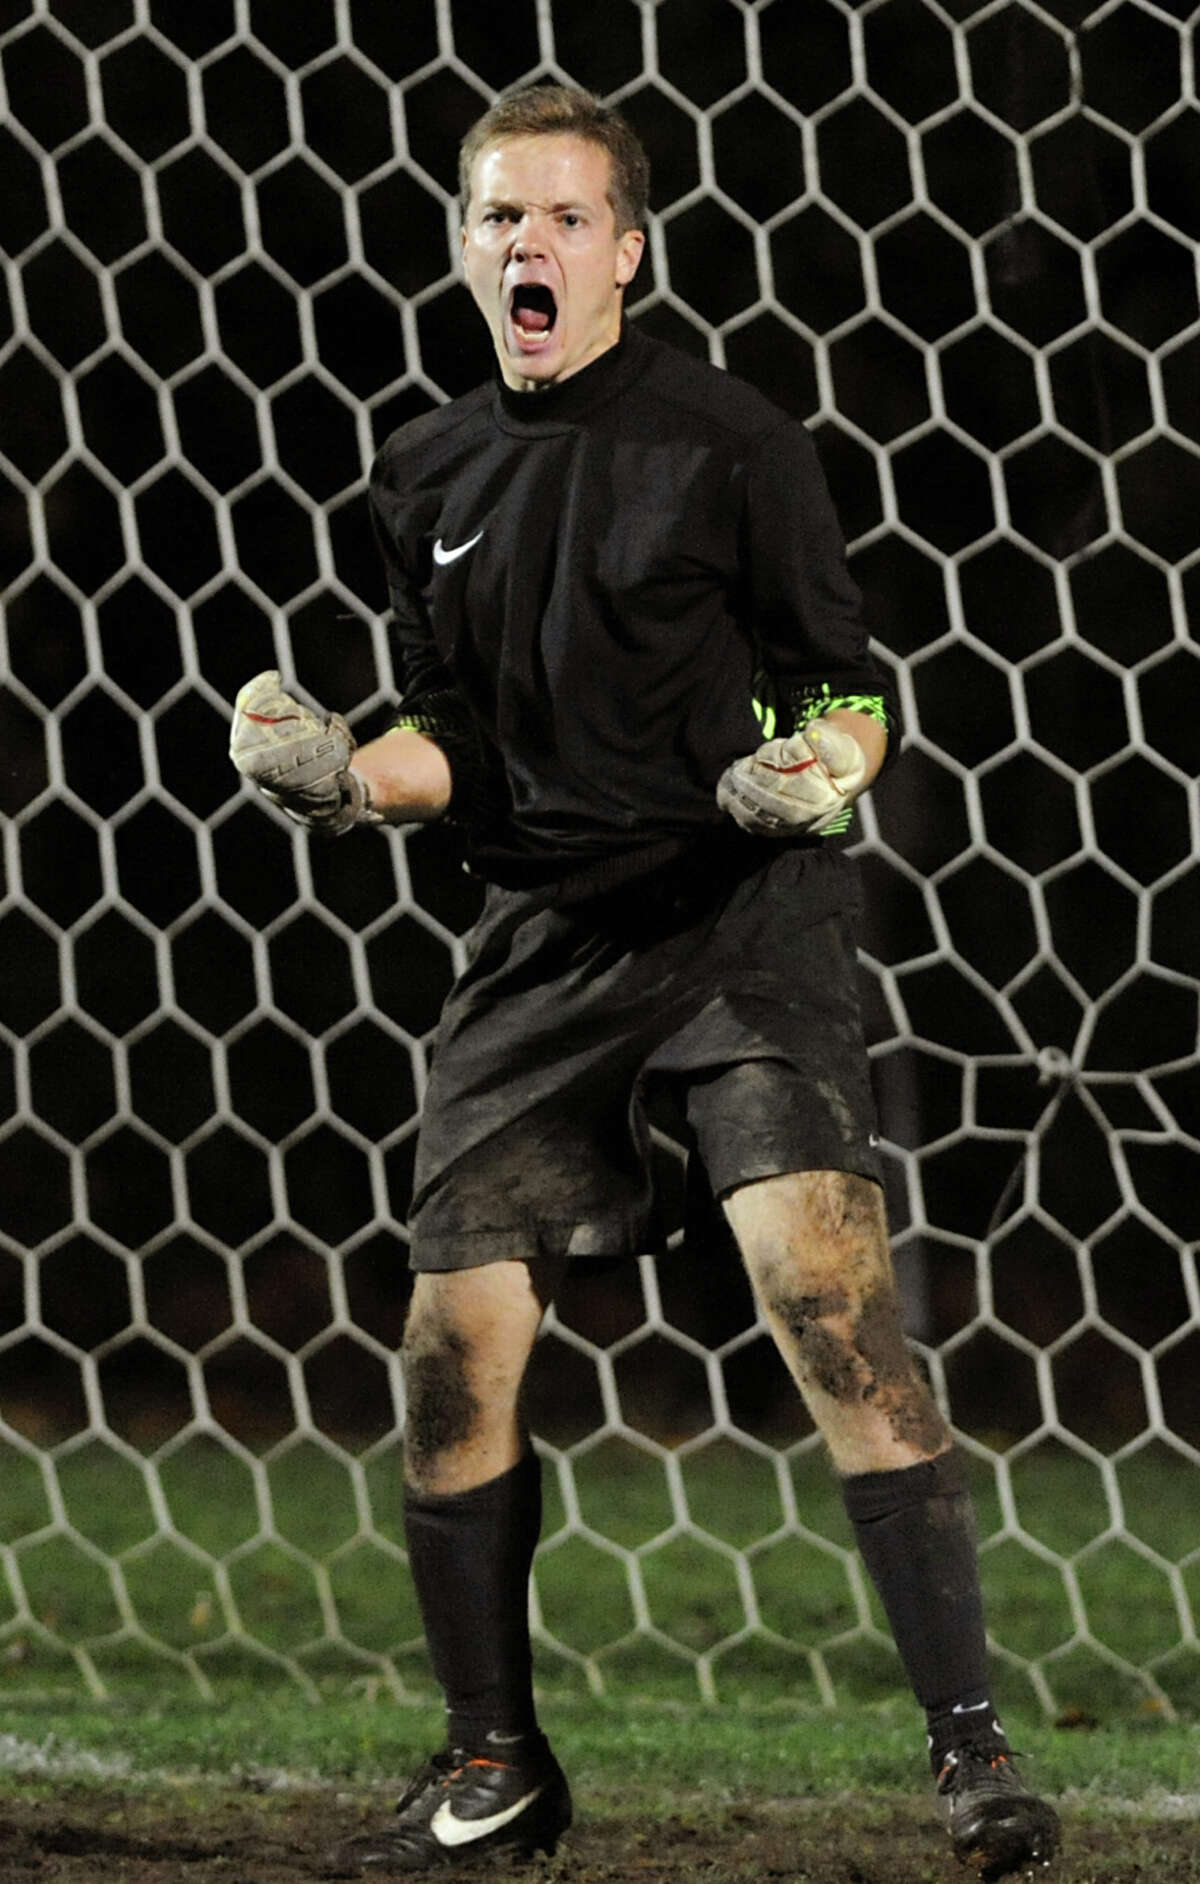 Niskayuna's goalkeeper Taylor Tear celebrates when he stops a Shenendehowa penalty kick during their Section II Class AA boys' soccer semifinals on Thursday, Nov. 1, 2012, at Colonie High in Colonie, N.Y. (Cindy Schultz / Times Union)